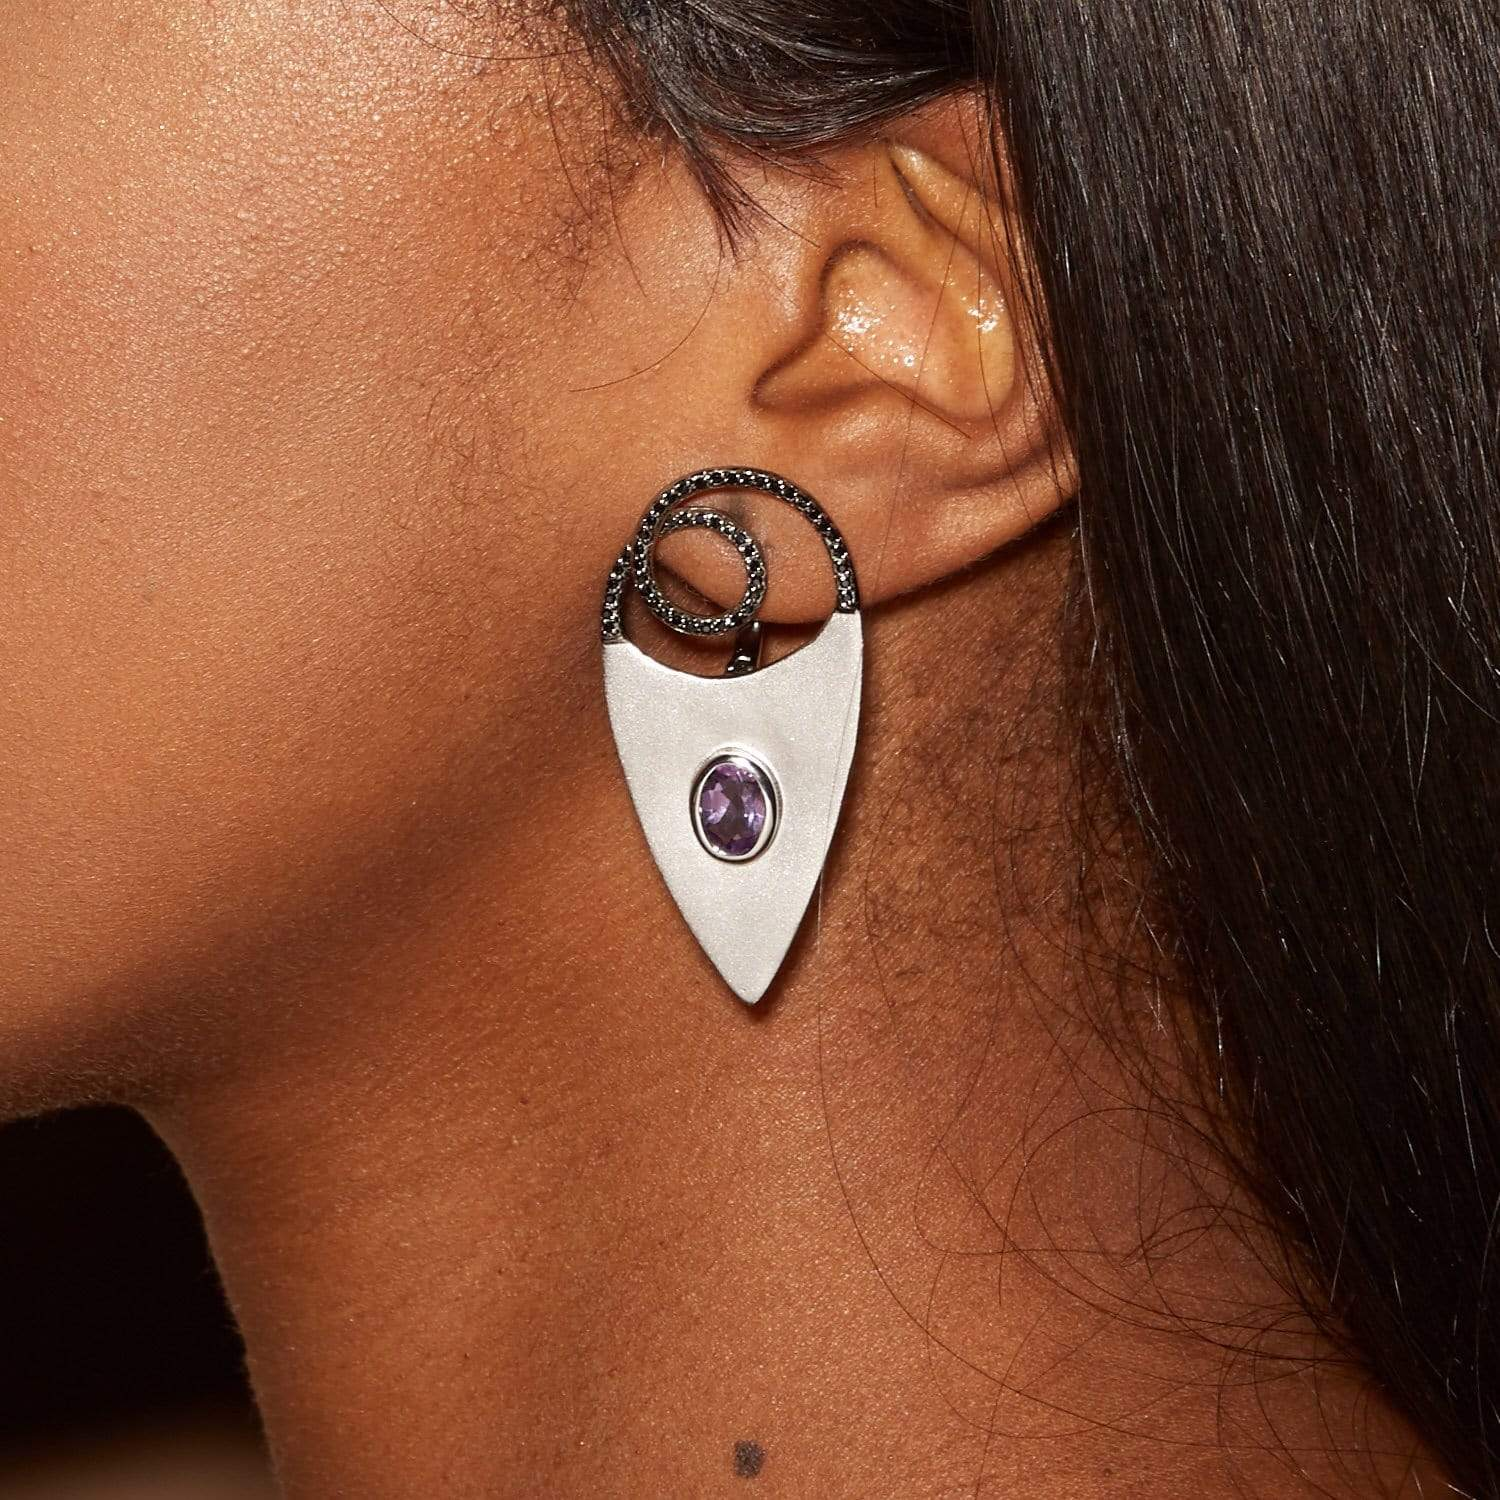 Telumis Earrings, Amethyst, Gold, Rhodium, Serial, silver, spo-disabled, StoneColor:Blue, StoneColor:MixedColor, Topaz Earrings